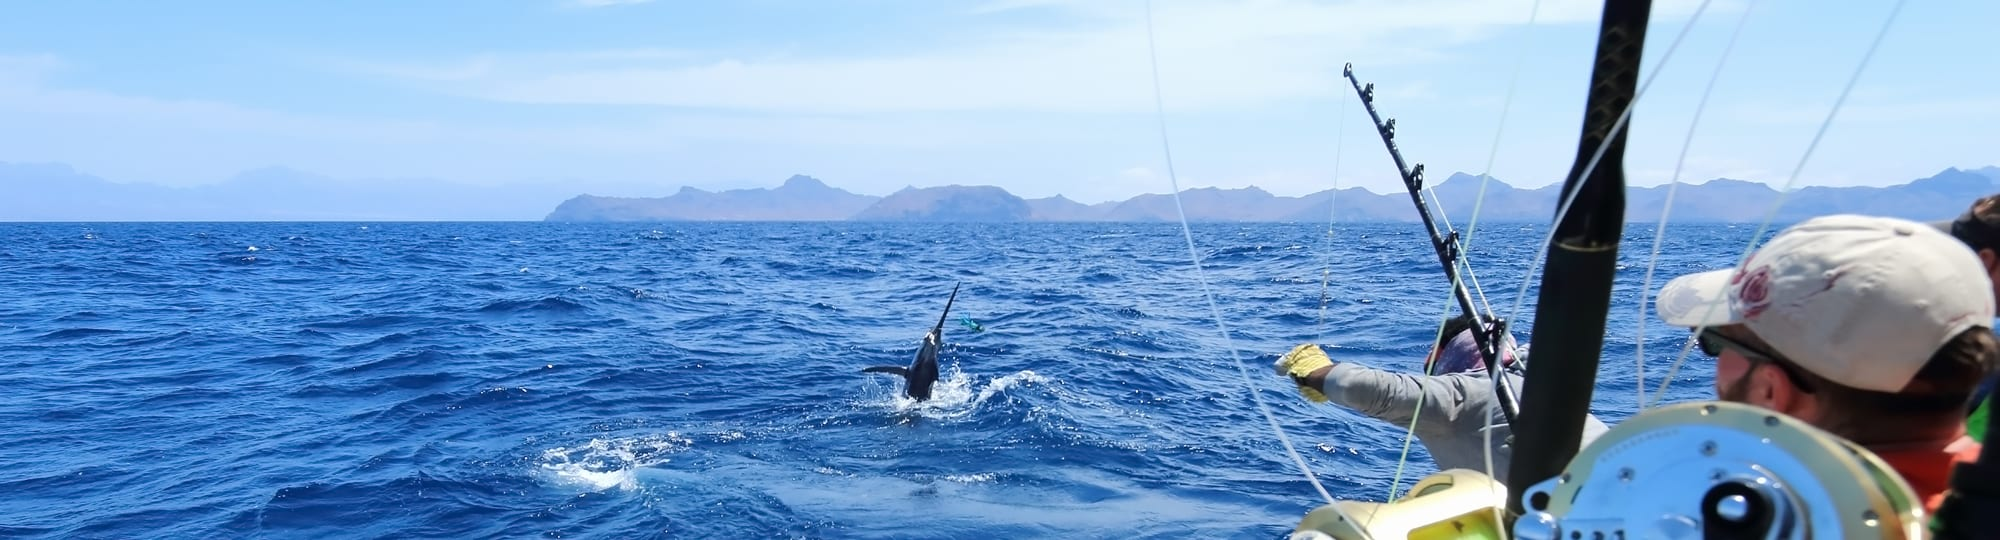 Fishing Charters in Maui - 2329